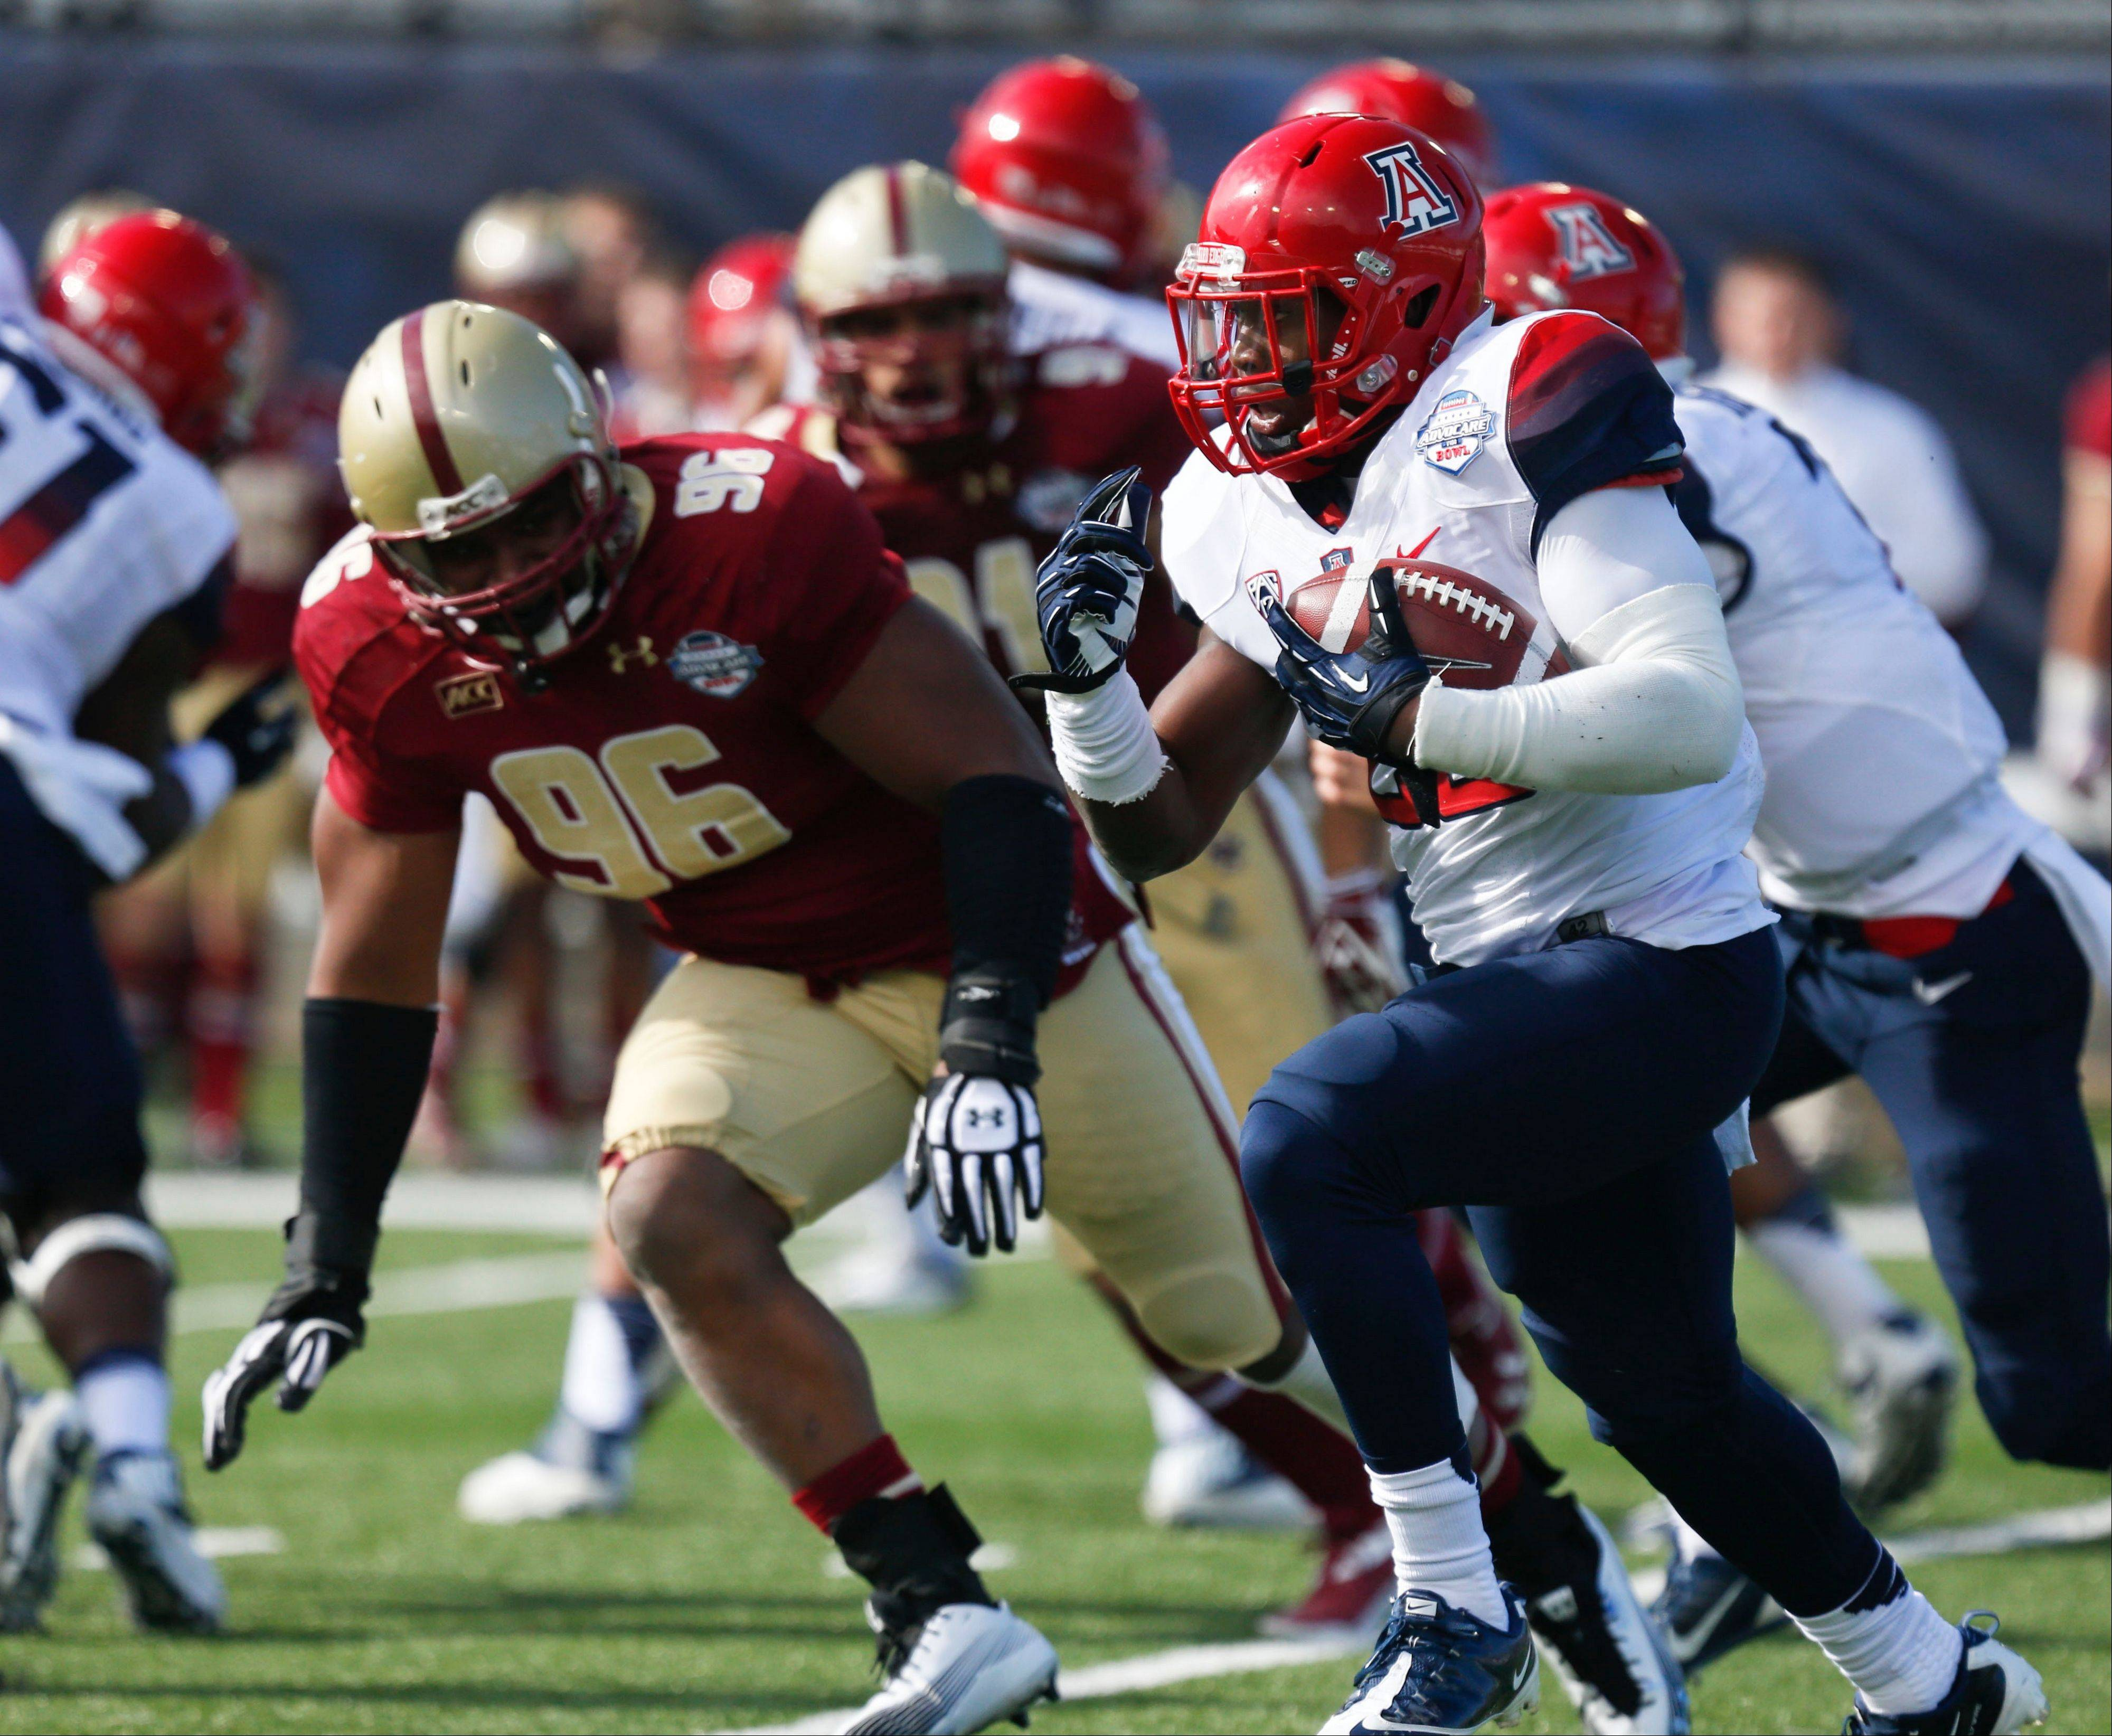 Arizona running back Ka�Deem Carey rushes upfield as Boston College defensive lineman Kaleb Ramsey pursues during the first half of the AdvoCare V100 Bowl on Tuesday at Independence Stadium in Shreveport, La.